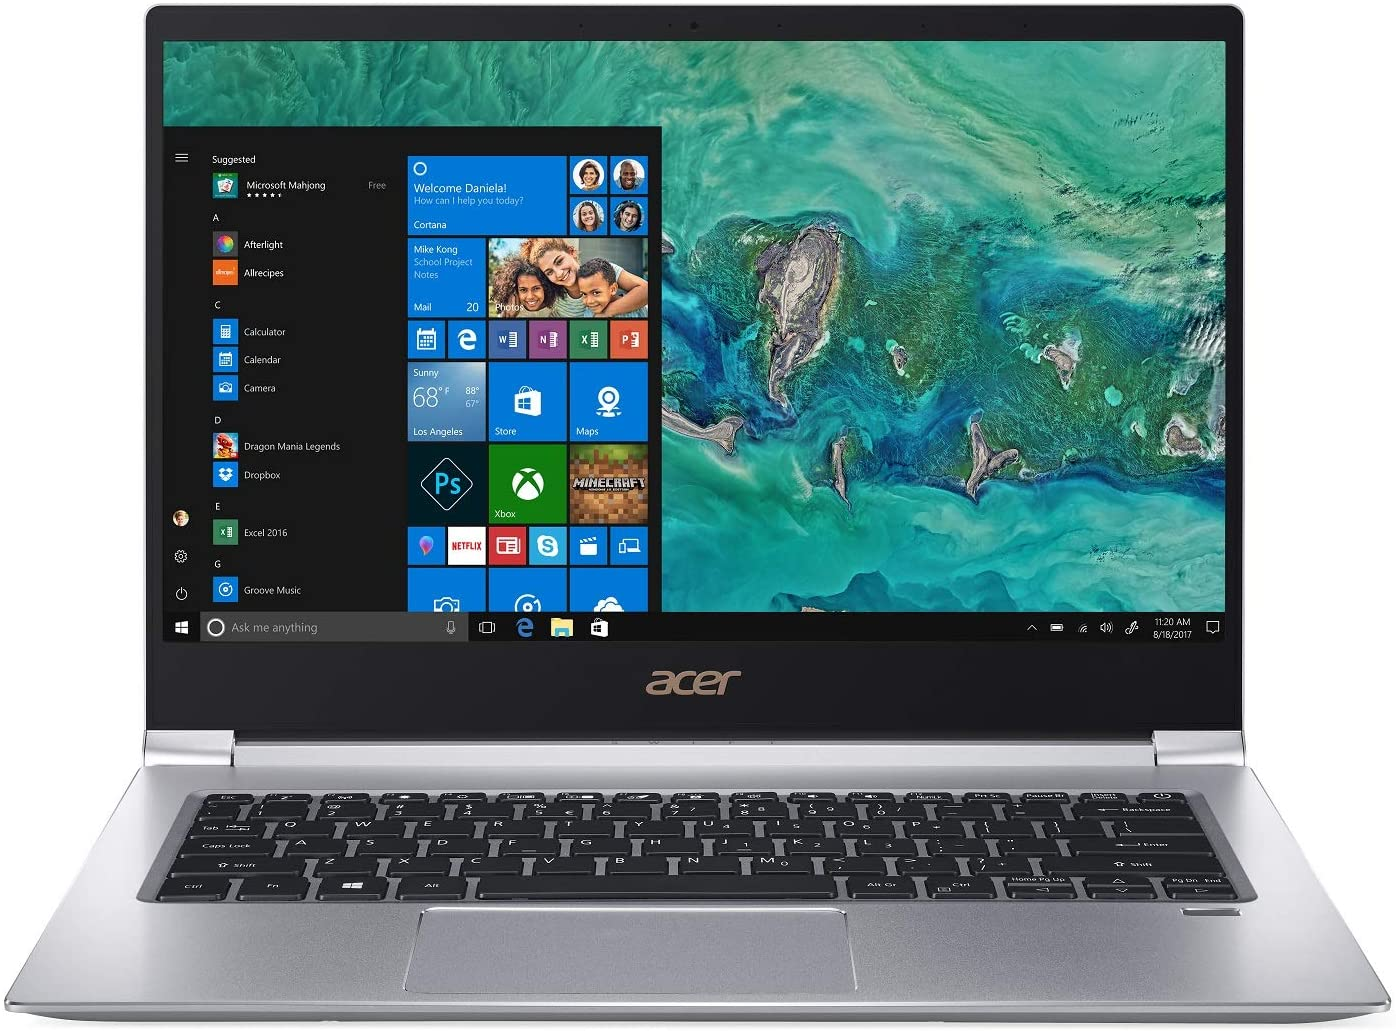 "Acer Swift 3 SF314-55-58P9, 14"" Full HD, 8th Gen Intel Core i5-8265U, 8GB DDR4, 256GB PCIe SSD, Gigabit WiFi, Back-lit Keyboard, Windows 10 Professional"